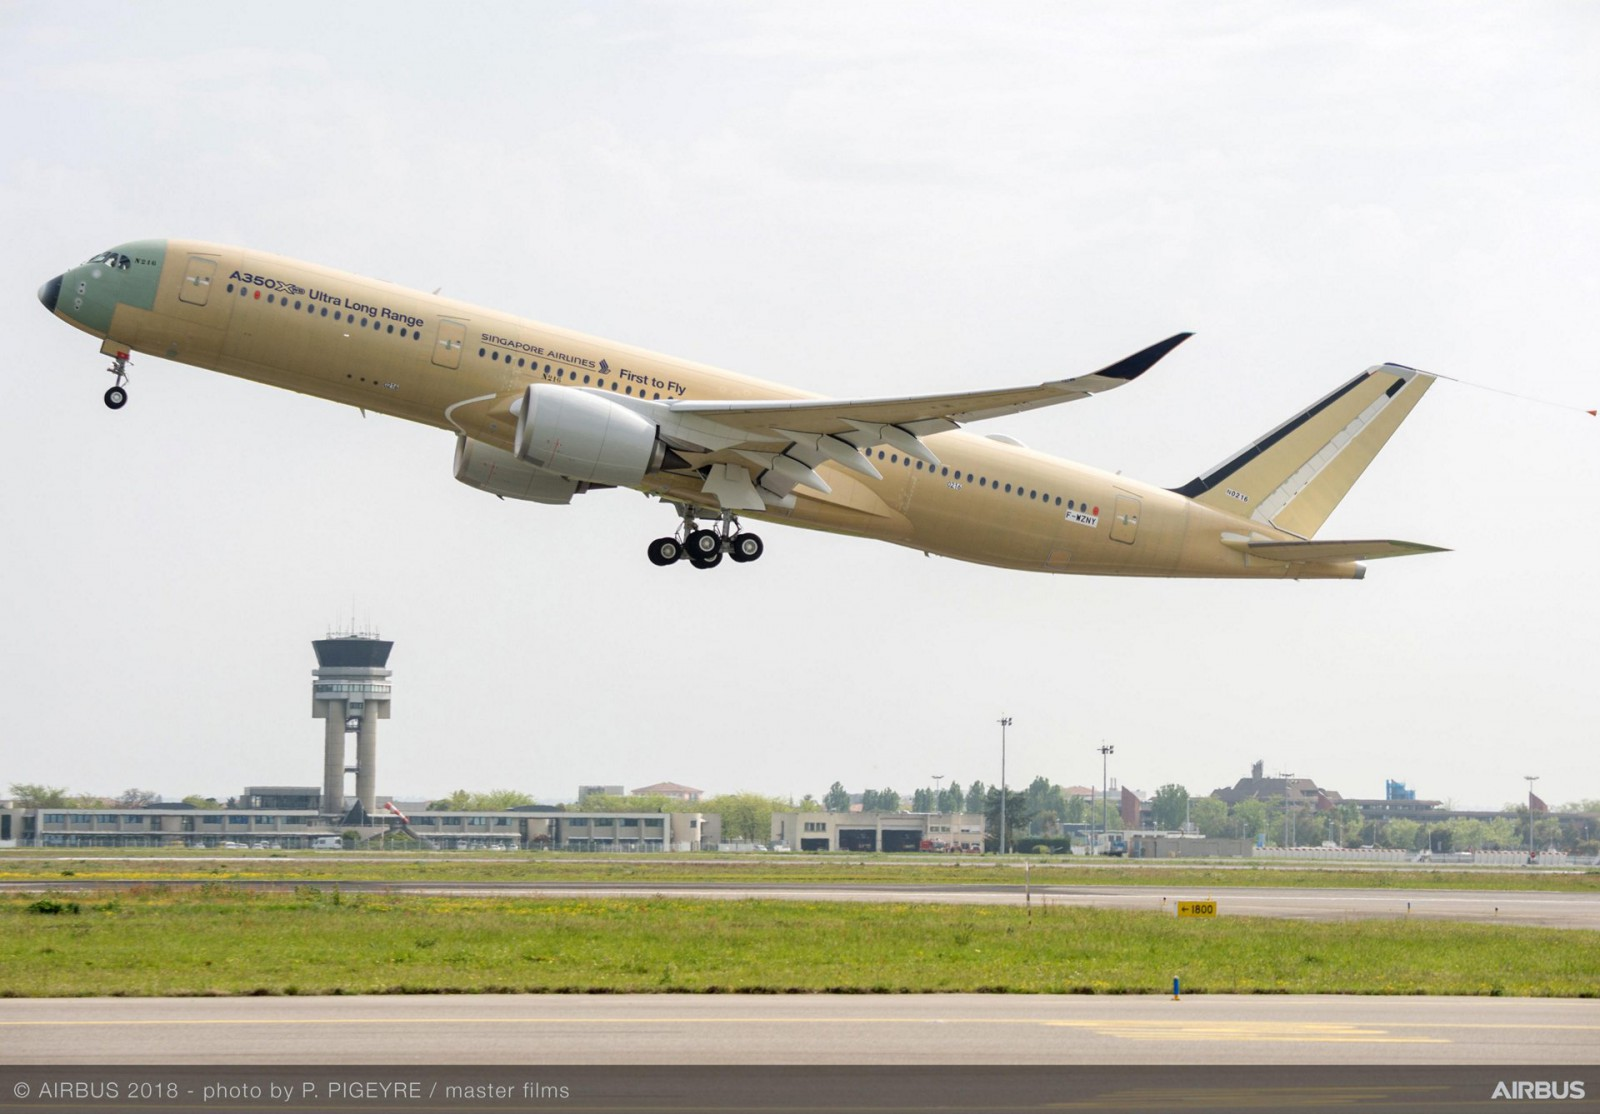 First flight A350 ultra-long-range